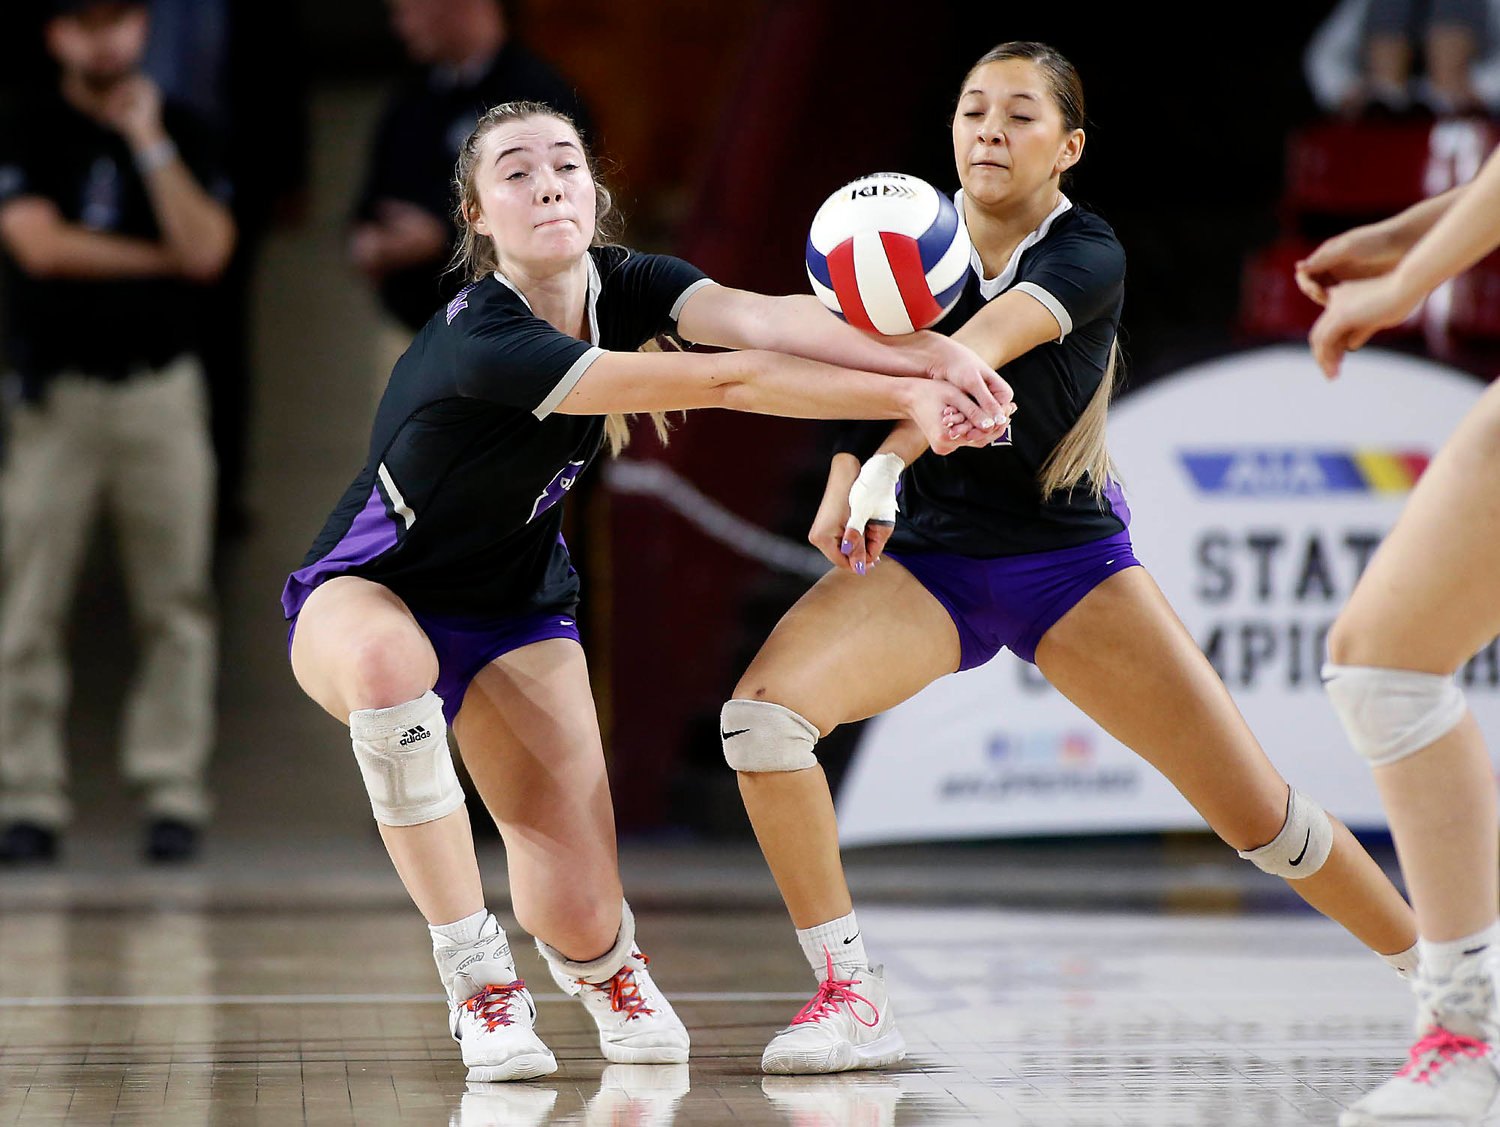 Millennium junior Jordan Miller, left, and junior Jocelyn Chavez-Rivas come together as they try to dig the ball during the girl's 5A state volleyball championship against Sunnyslope at Desert Financial Arena on Tuesday, Nov. 12 in Tempe.